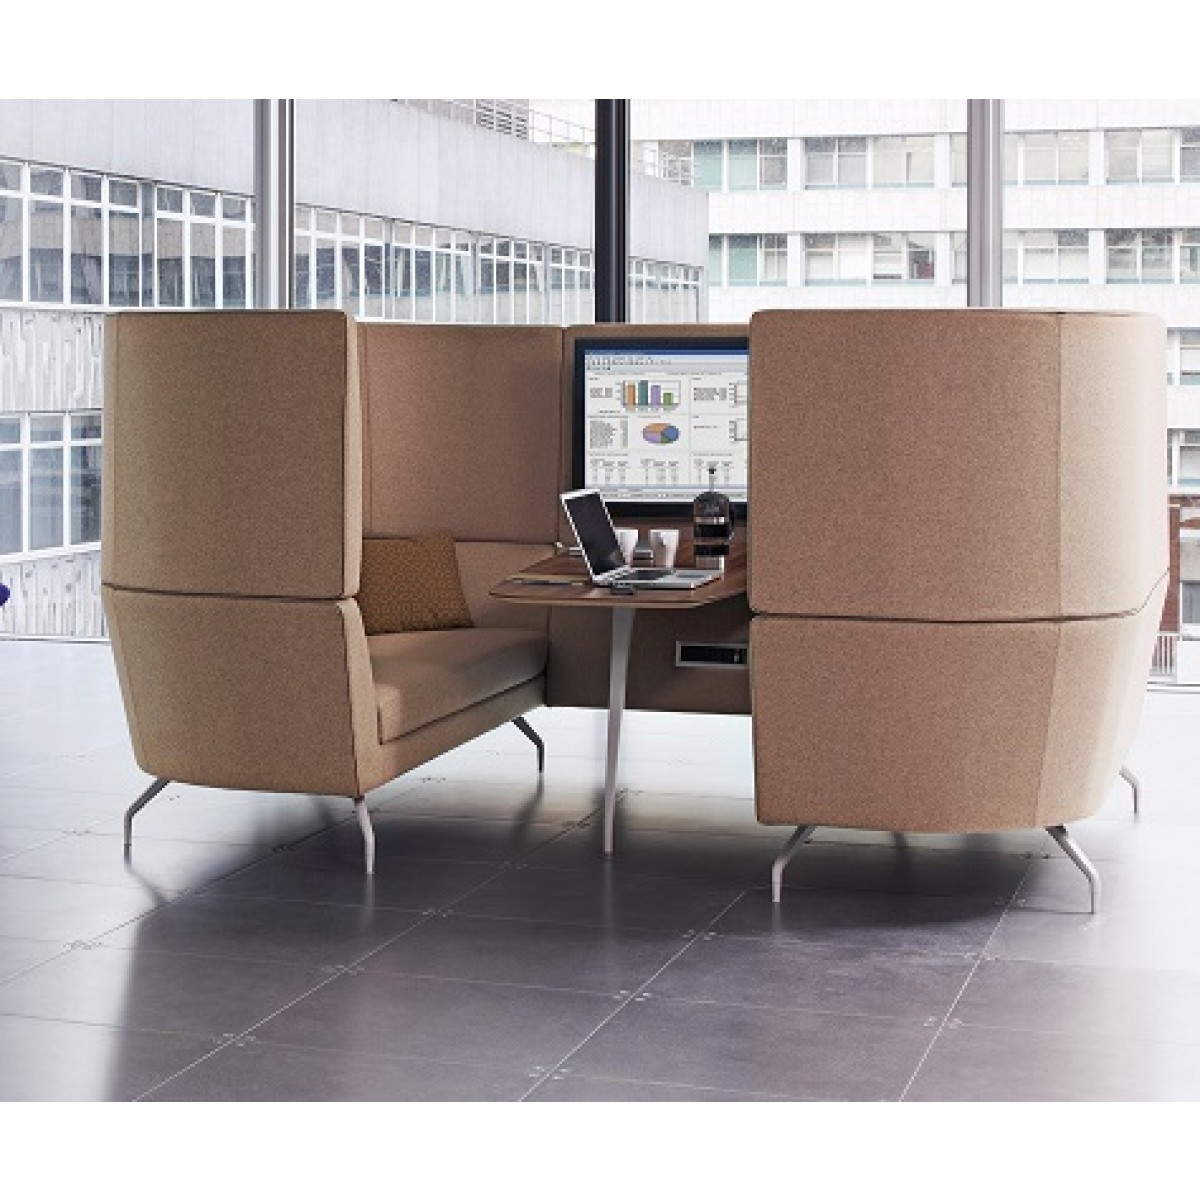 Orangebox Breakout Seating Cwtch Work Pod